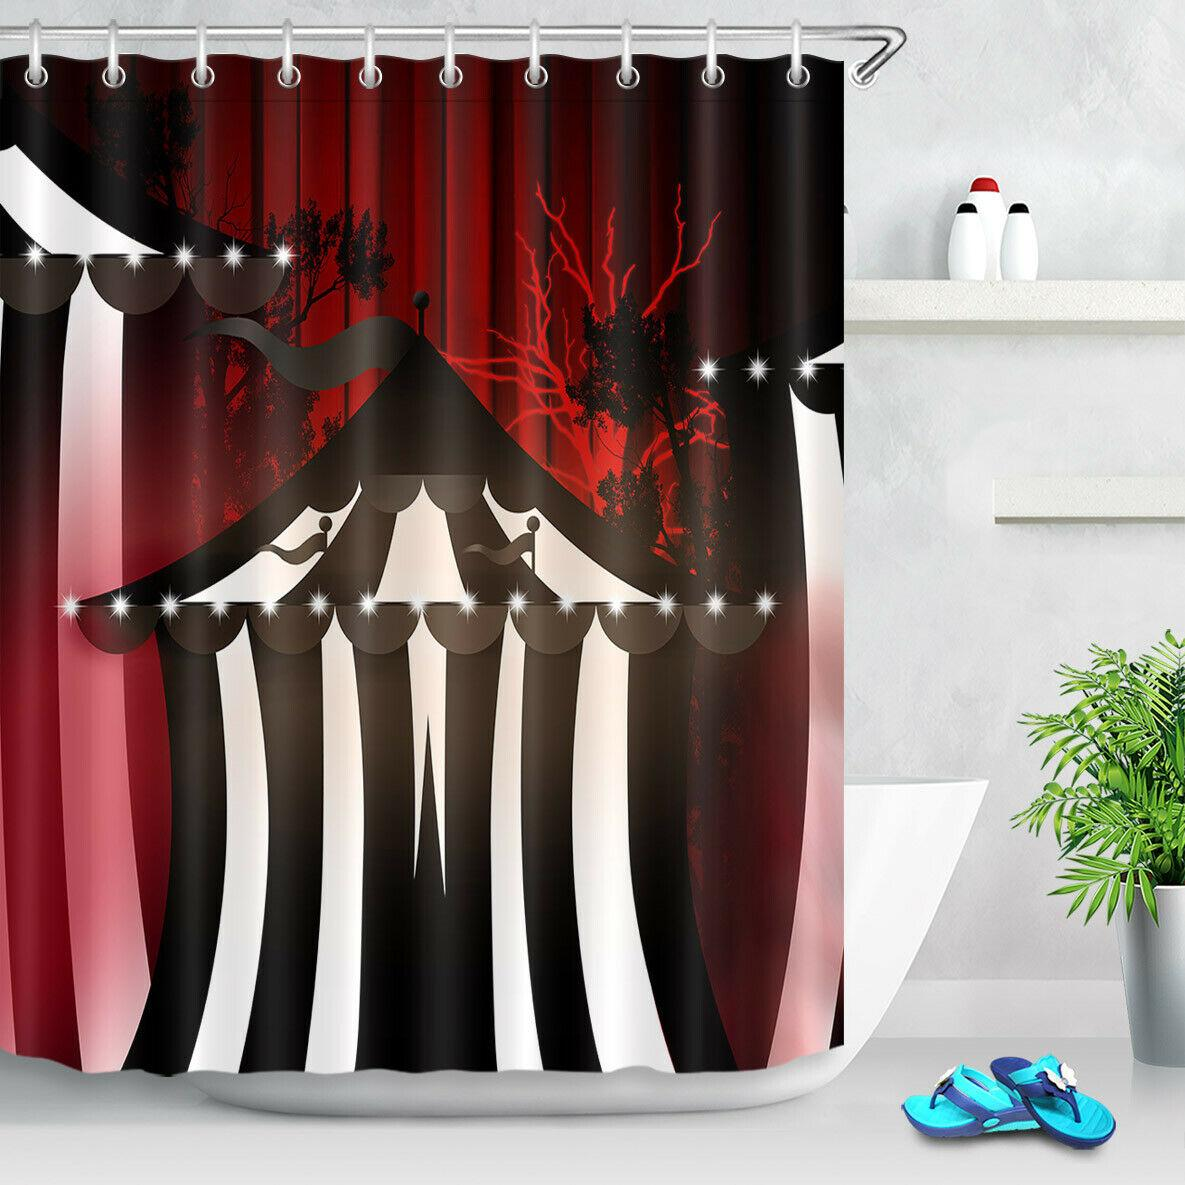 2019 Halloween Black White Striped Tent Bathroom Shower Curtain Durable Fabric Mold Proof Bathroom Pendant Creative With 12 Hooks 180x180cm From